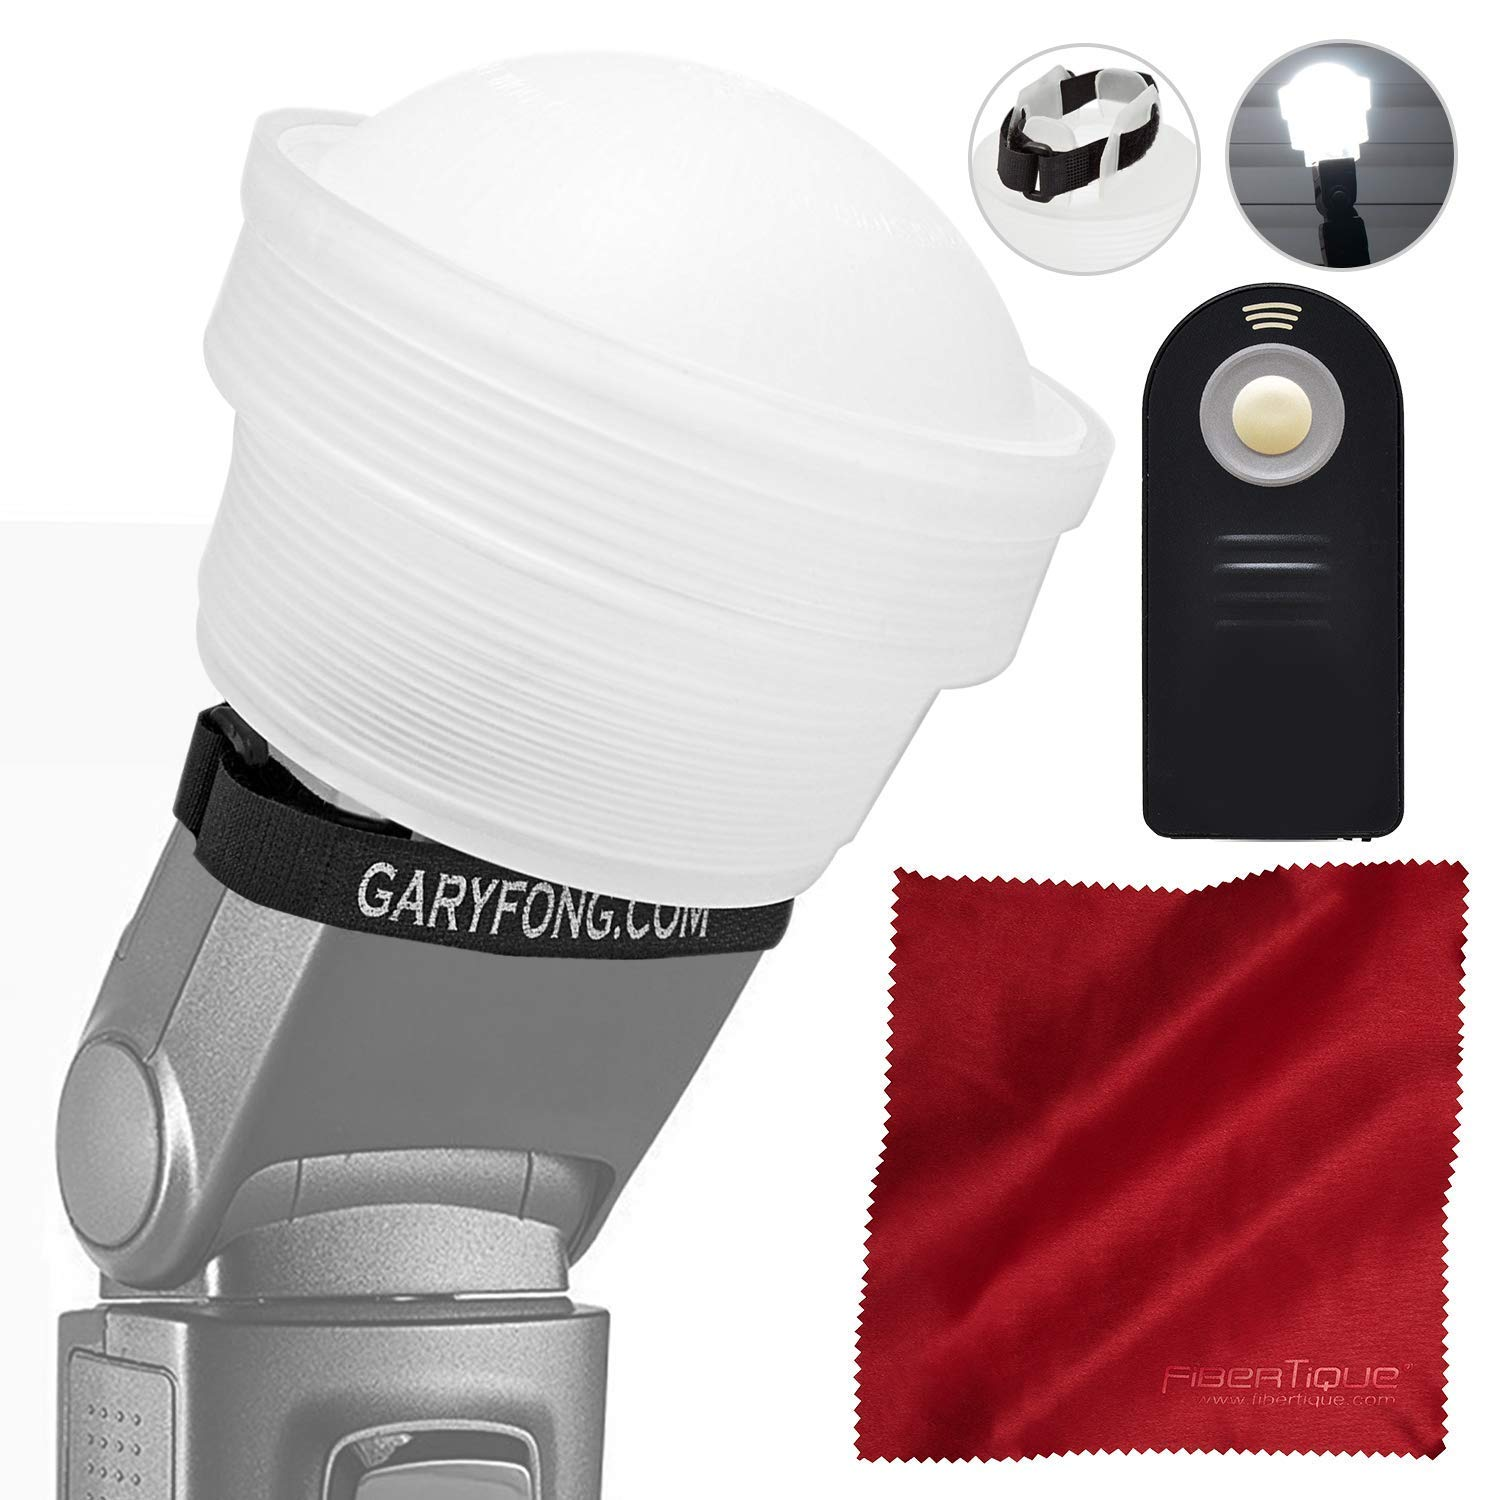 Gary Fong Lightsphere Collapsible with Speed Mount (Generation 5) with Remote for Nikon